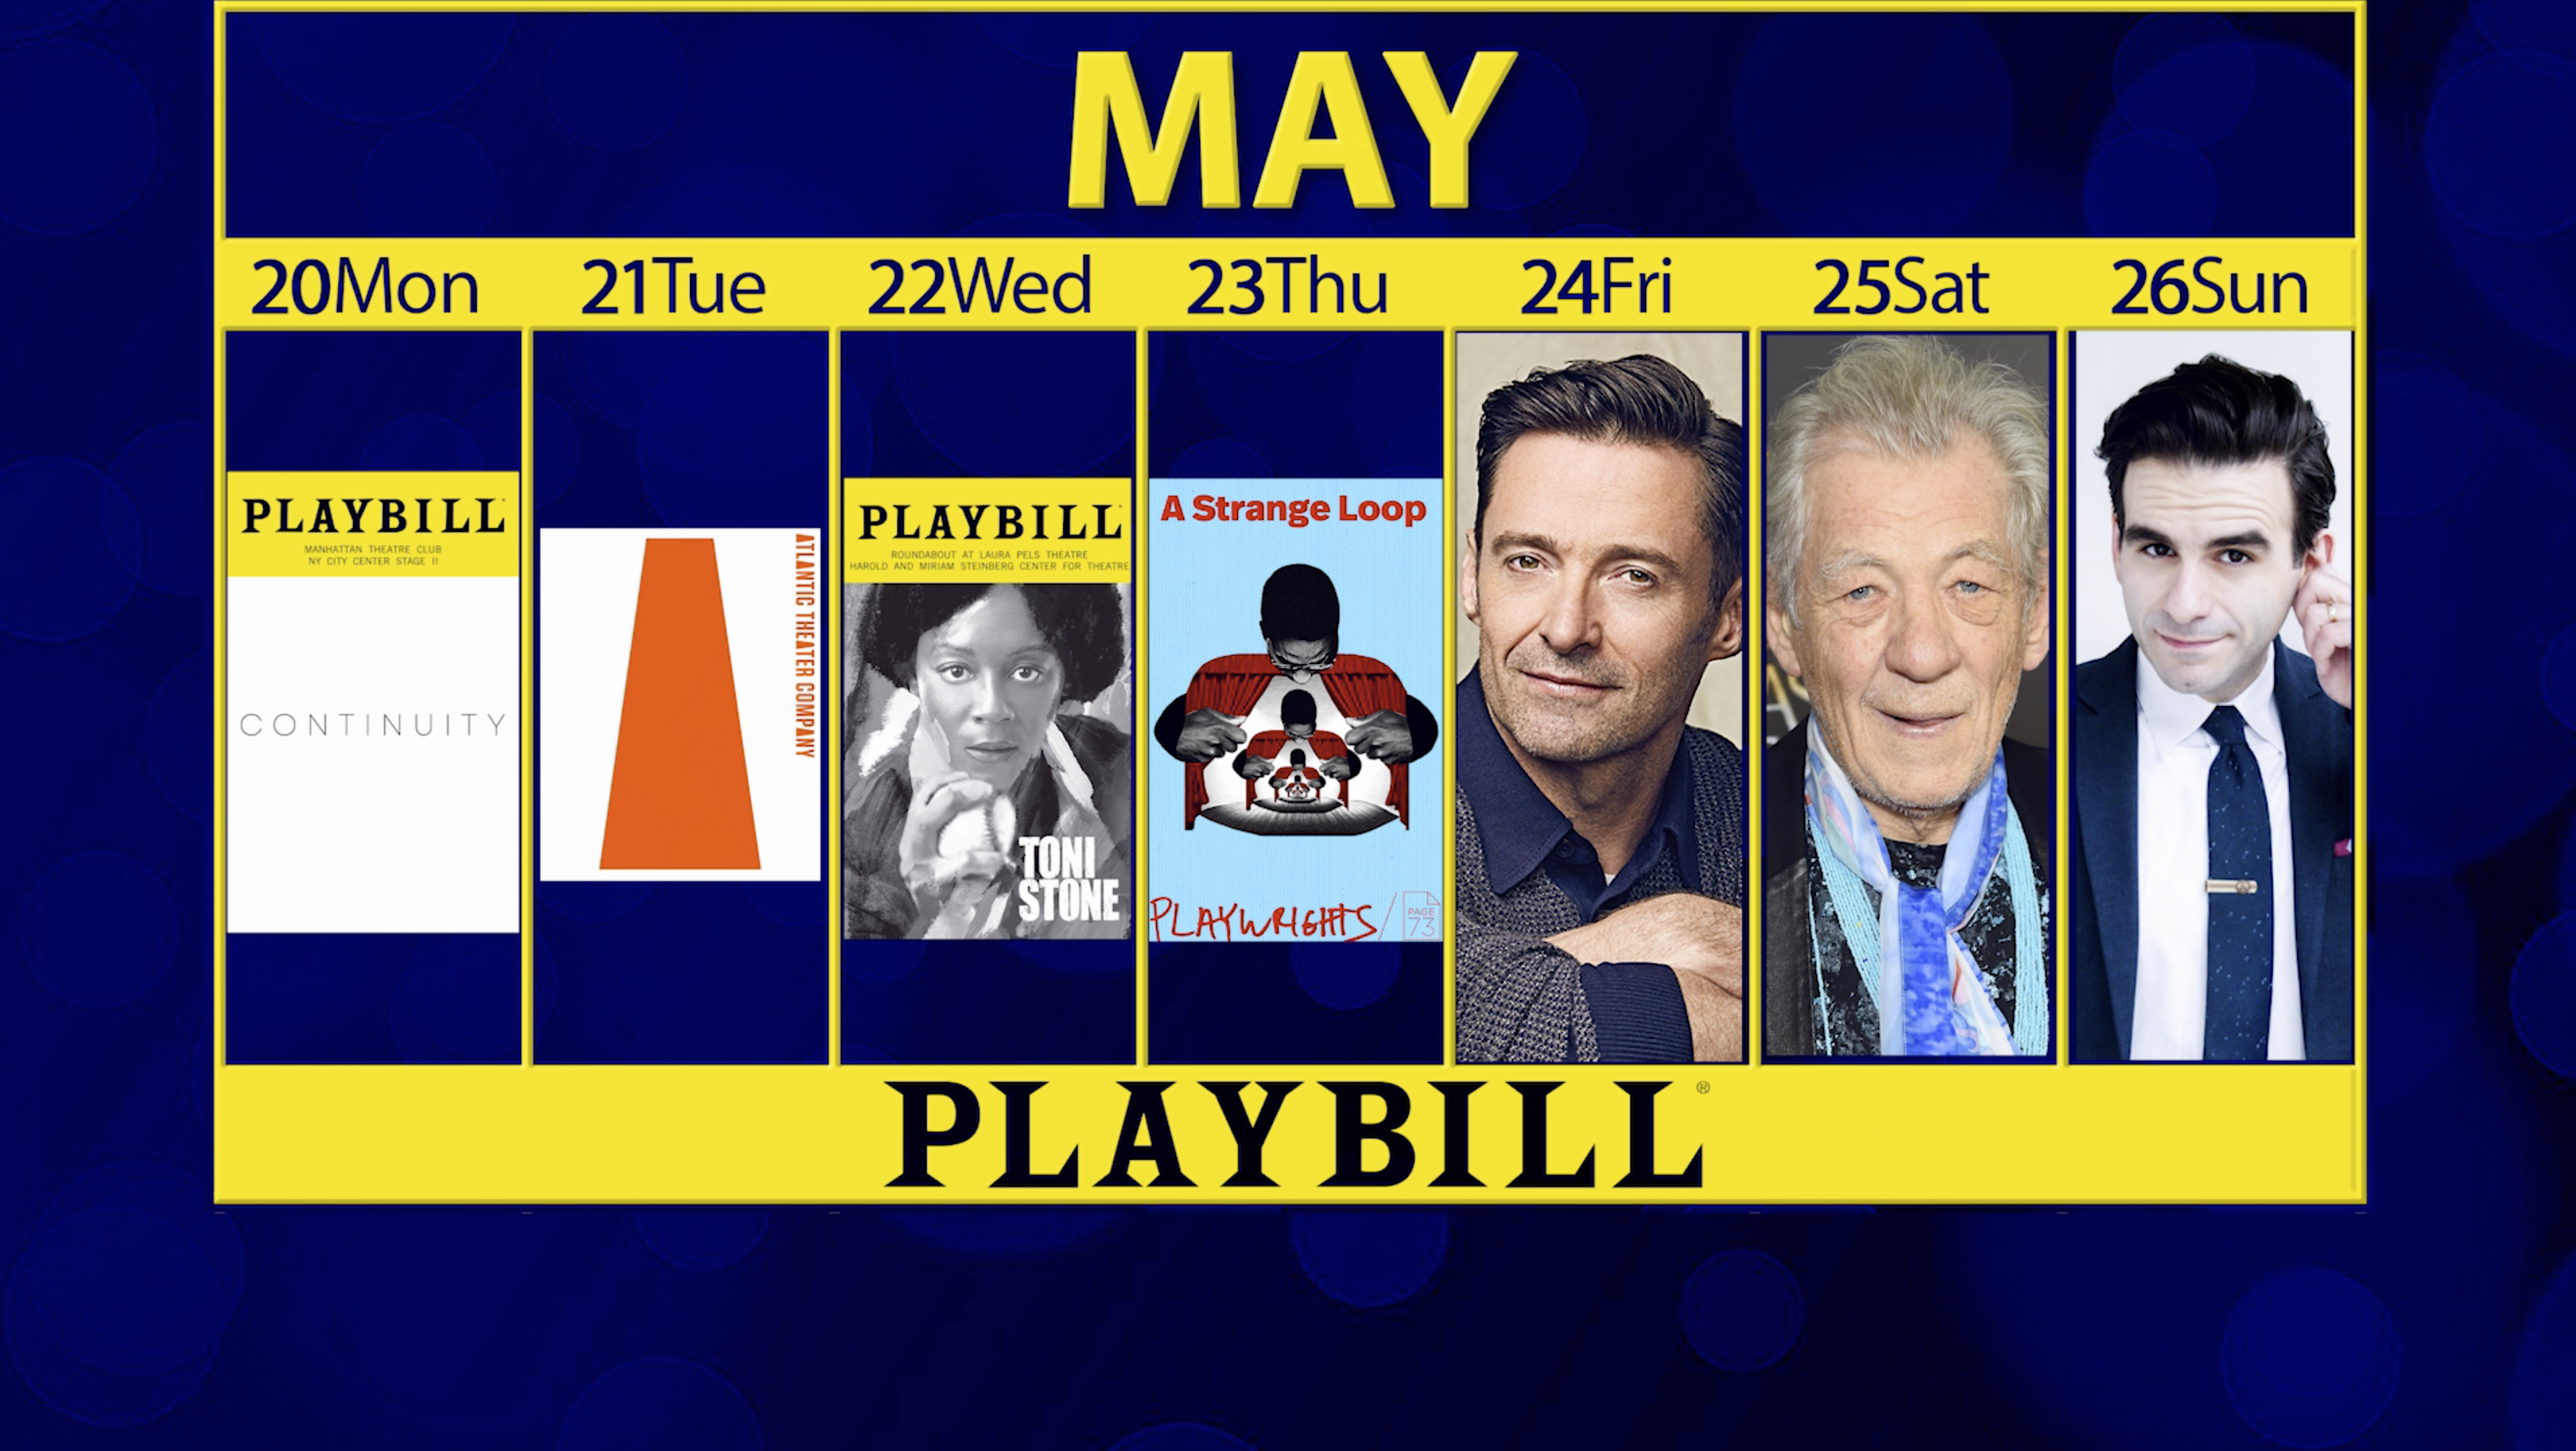 Playbill Calendar: Your Guide to Broadway, Off-Broadway and More May 20-26